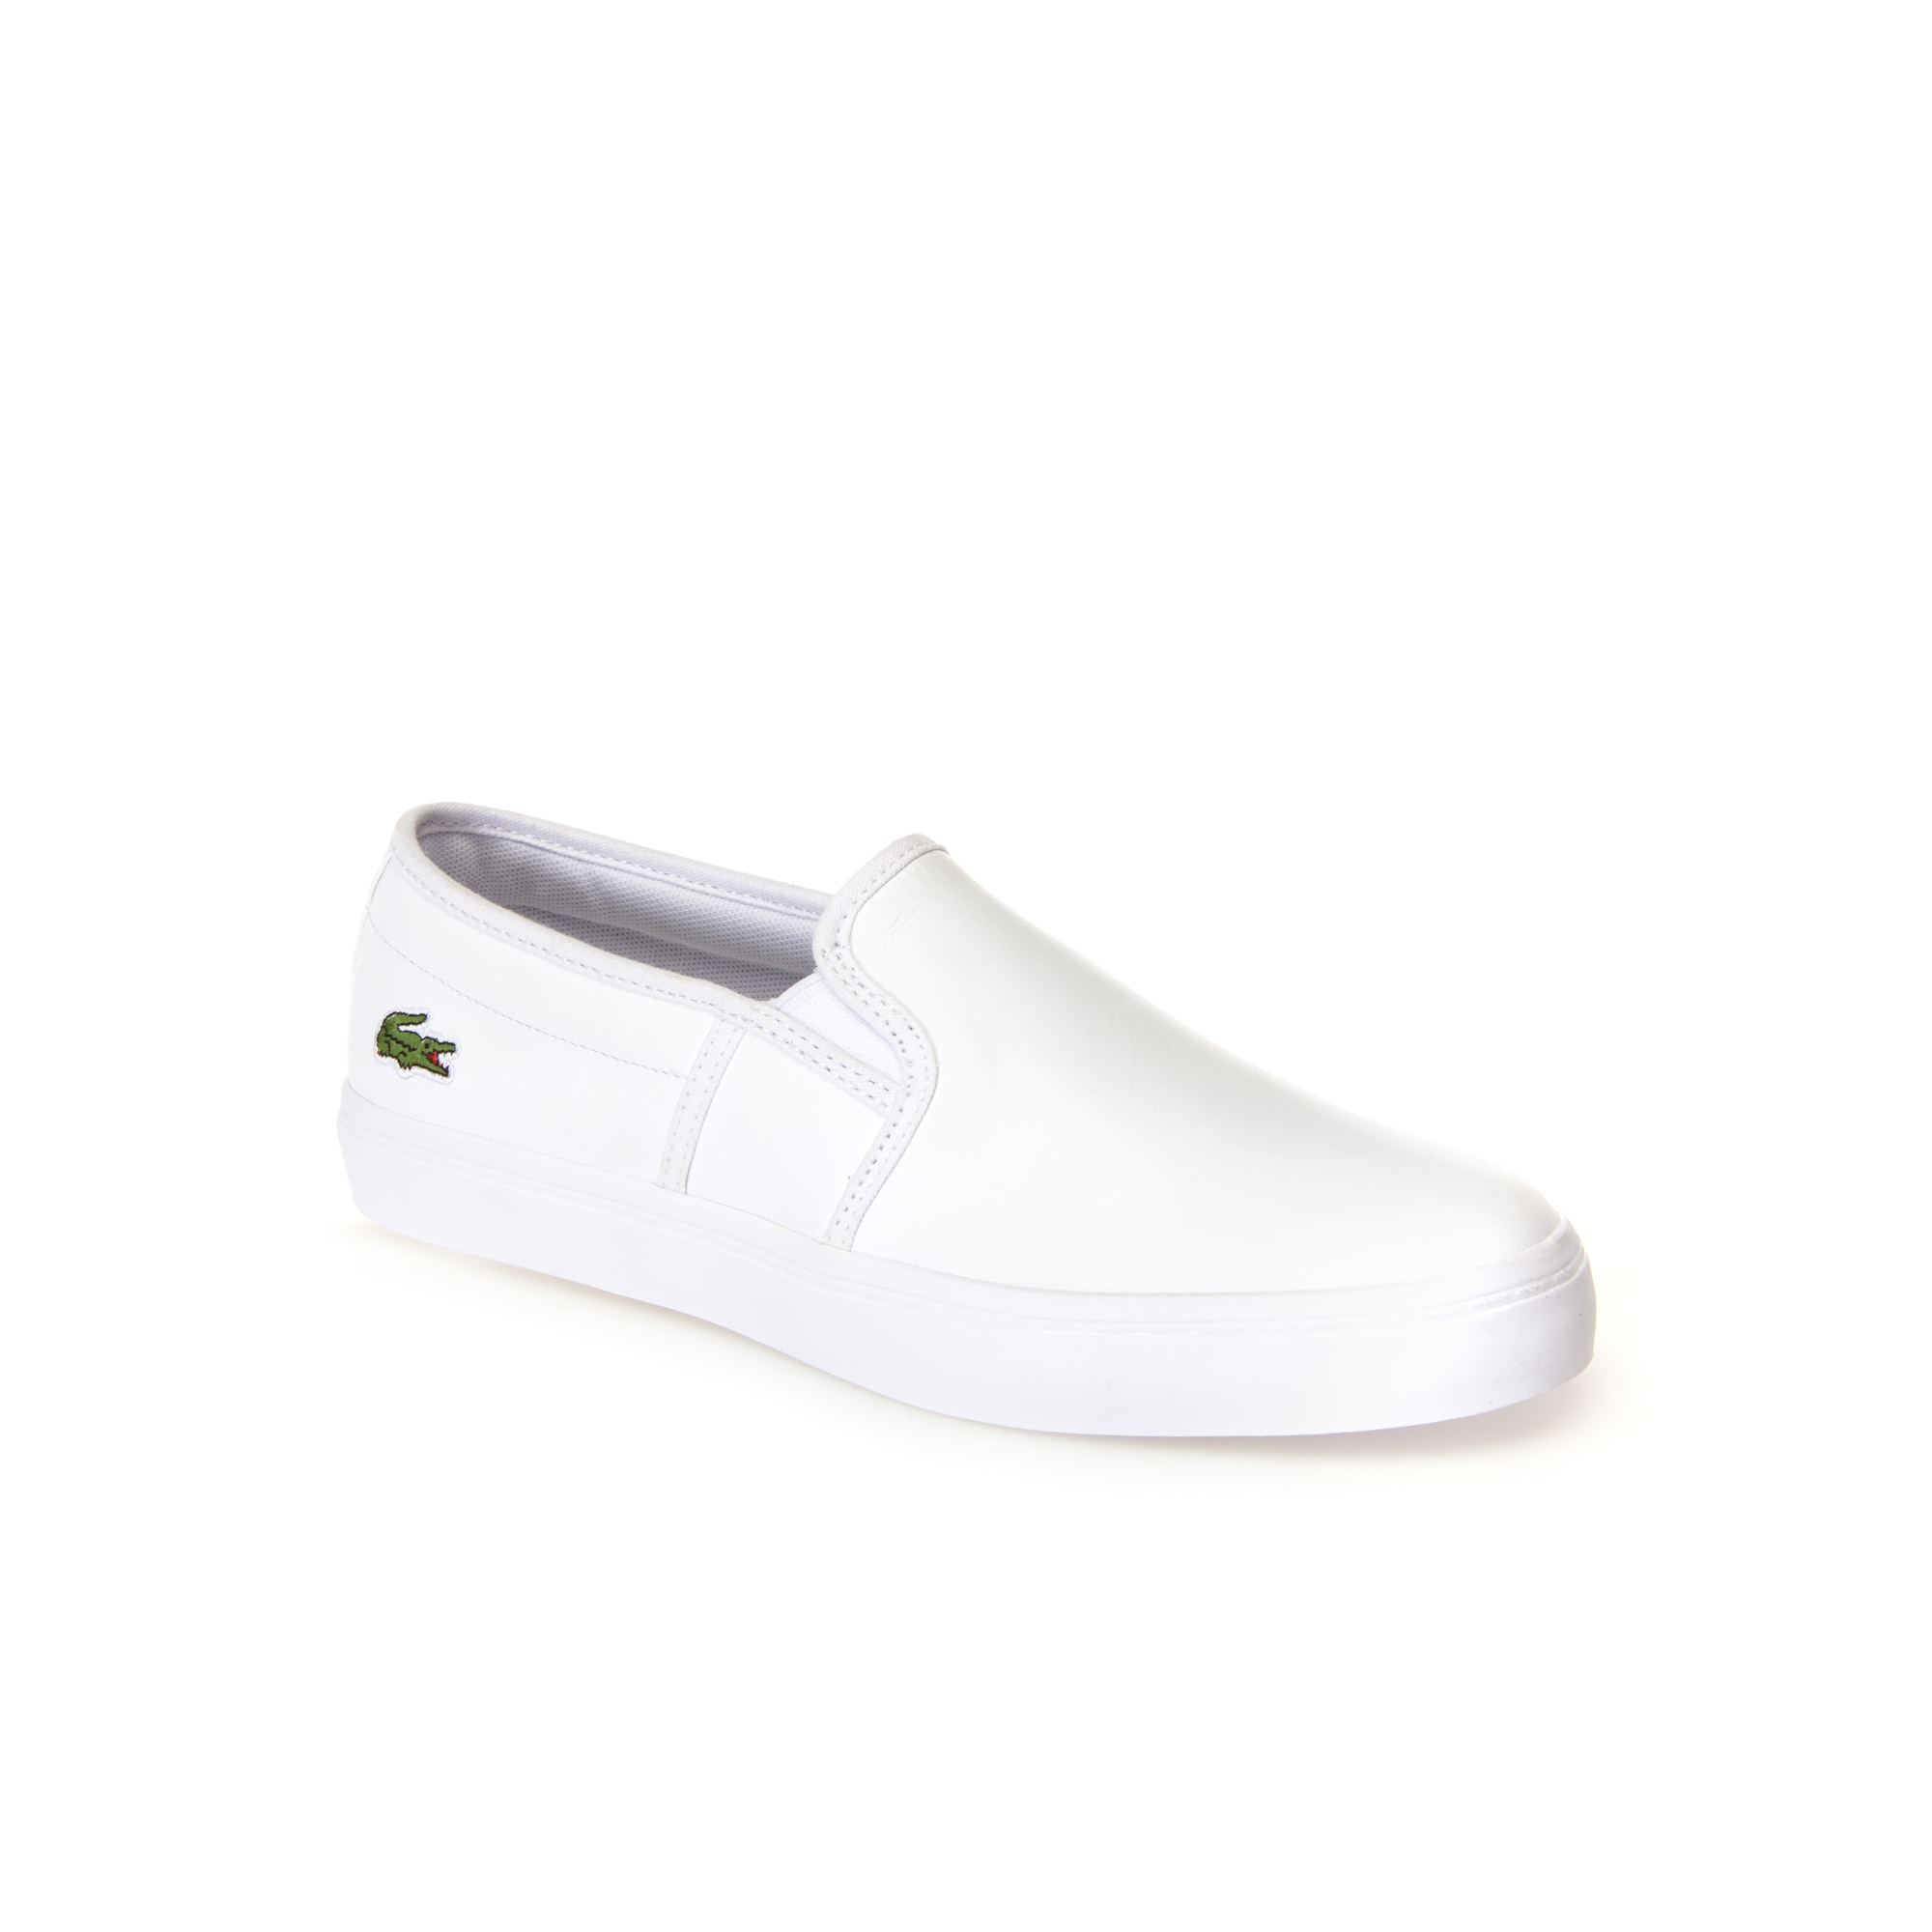 e365f9fe4 Lacoste shoes for women  Boots